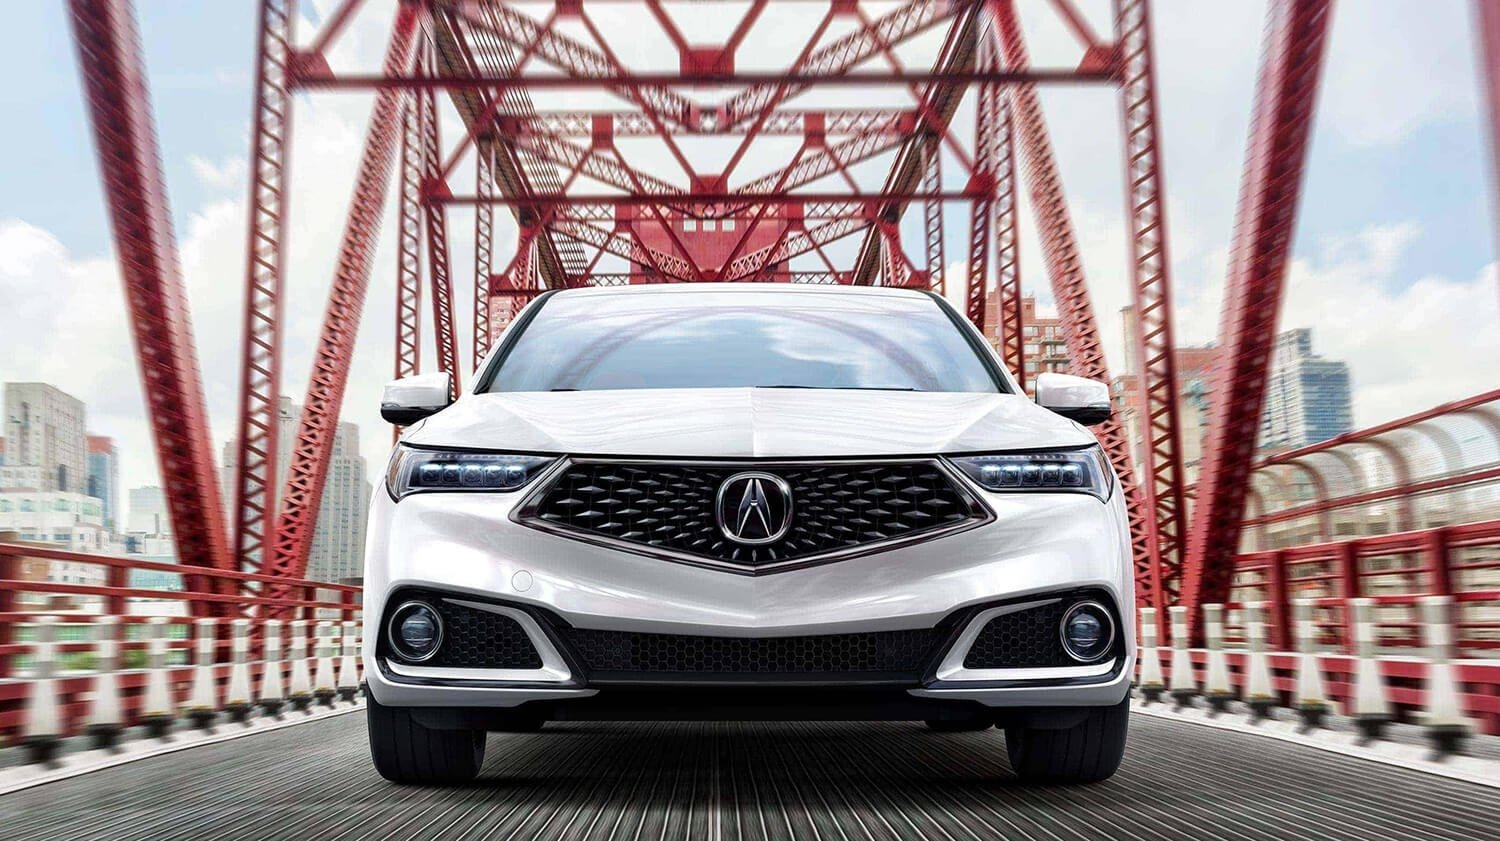 2018 acura grill. wonderful grill 2018 acura tlx exterior diamond pentagon grille intended acura grill r